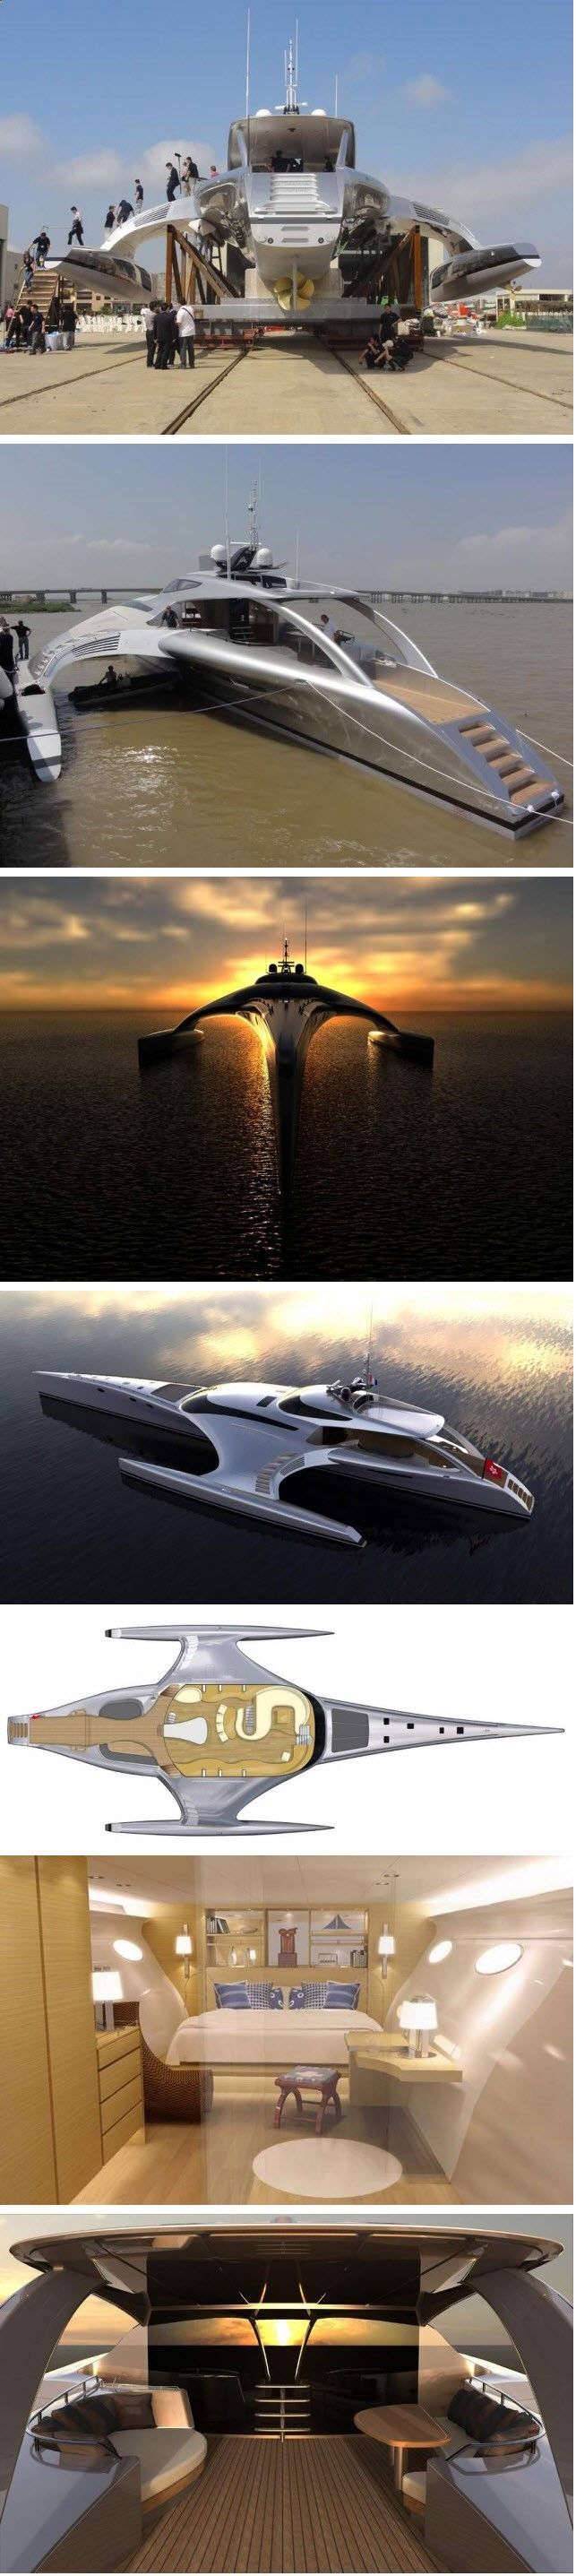 After five years of planning and construction a futuristic Trimaran superyacht Adastra by McConaghy boats in Zhuhai China, described as one of the most stunning of its kind, has been launched into the Pearl River in China. The 42.5 m luxury superyacht built for Hong Kong couple Anto and Elaine Marden, priced at 15 million USD, weighs 52 tons, has a range of 4000 nautical miles (at 17 knots) and a maximum speed of 22.5 knots.